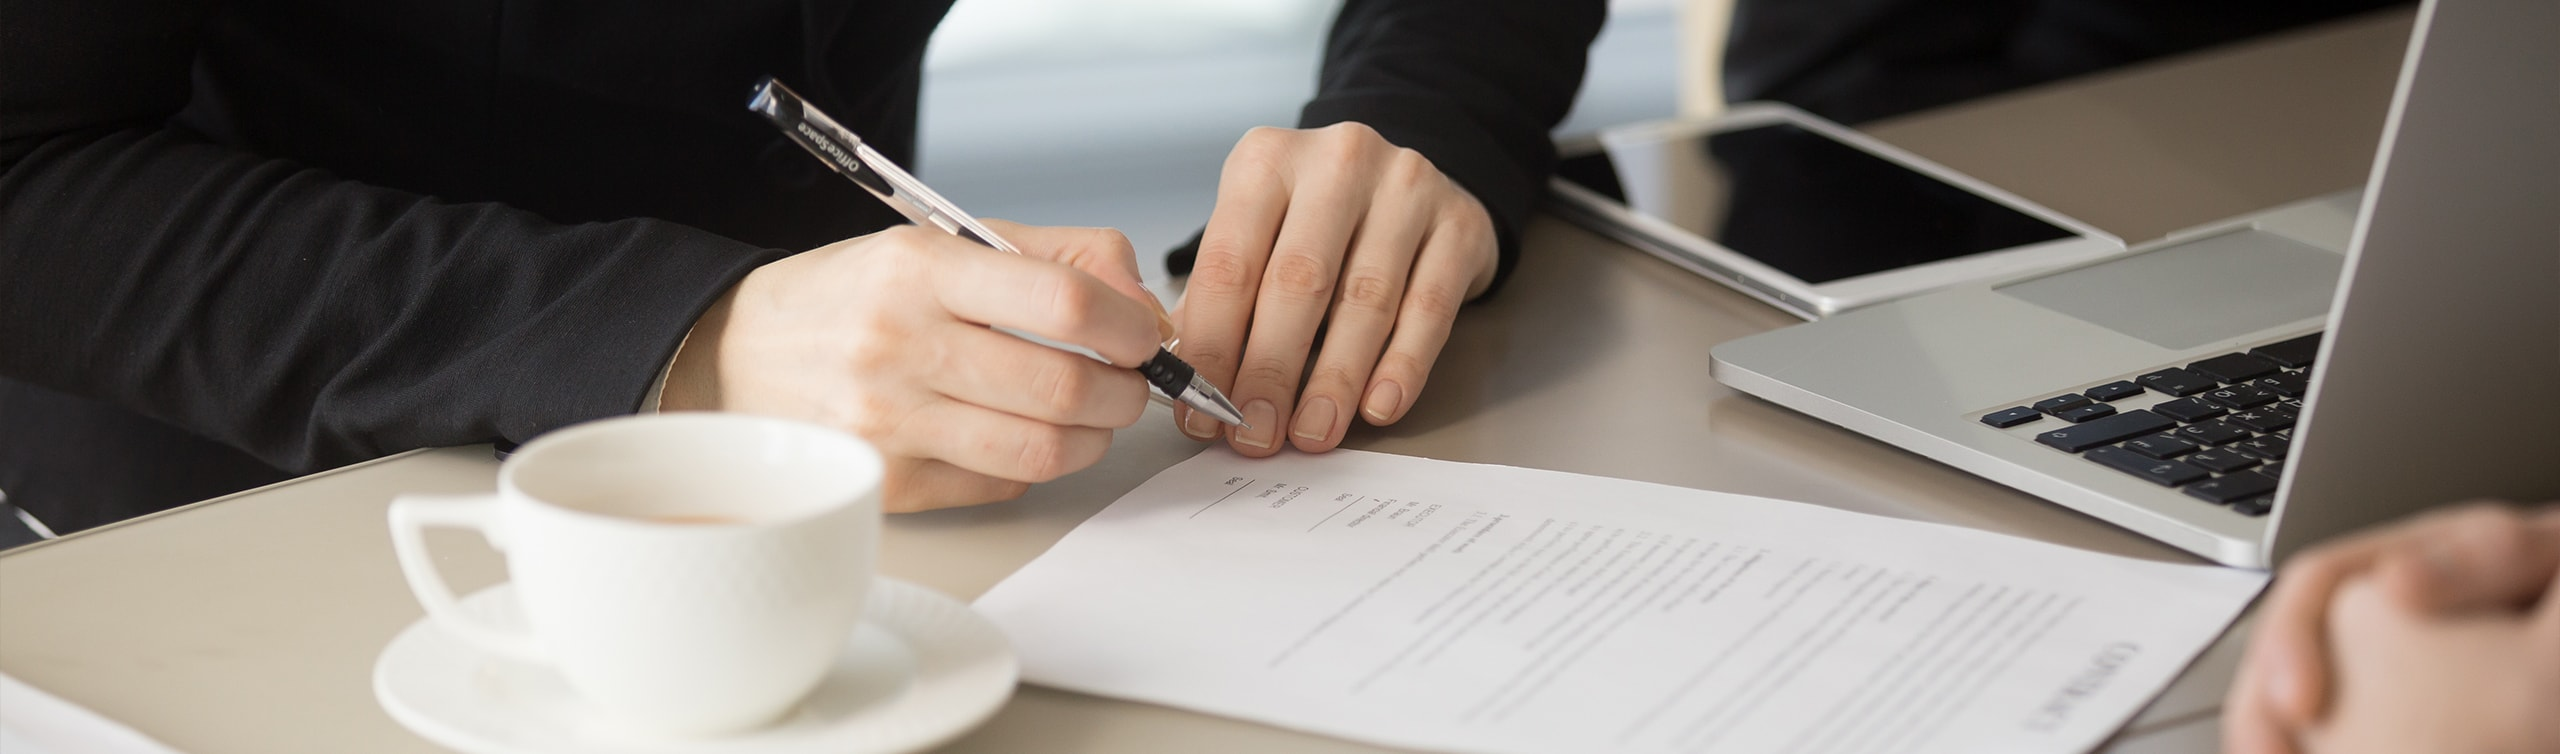 close up of woman signing a document to designate beneficiary